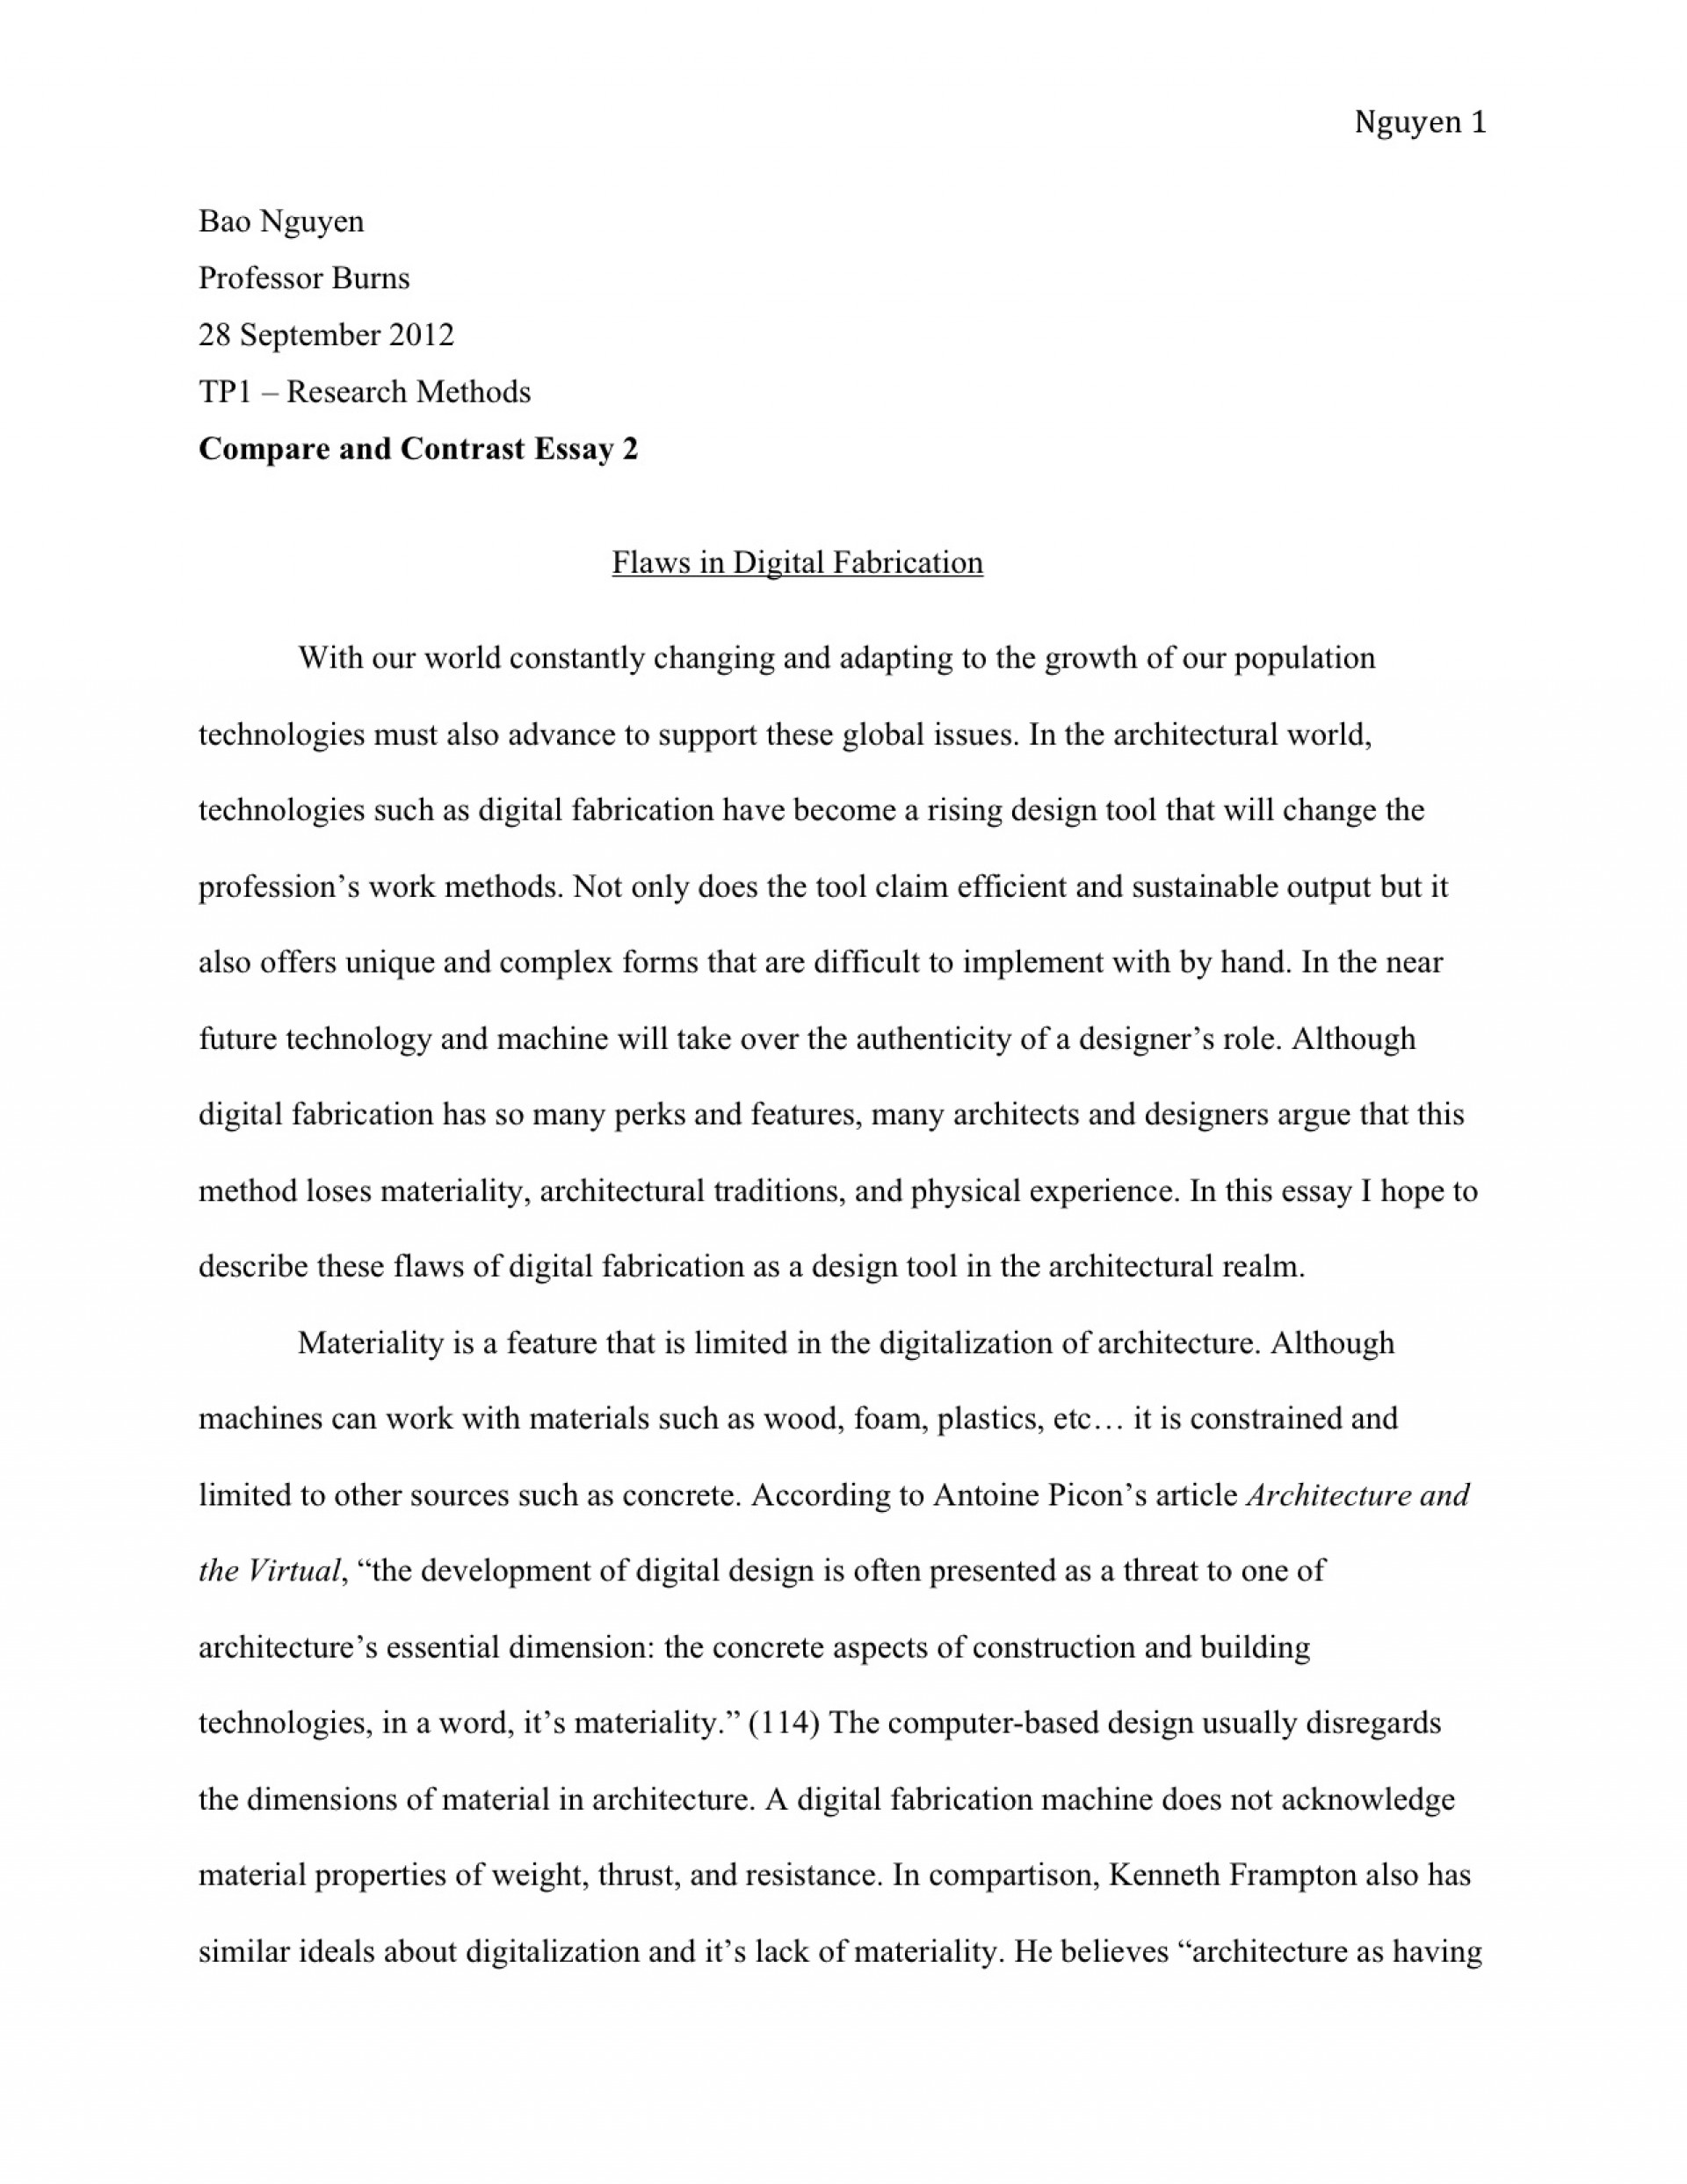 004 Essay Example How To Type An Tp1 3 Awesome Fast A One Page Paper In Apa Format Mla On Mac 1920